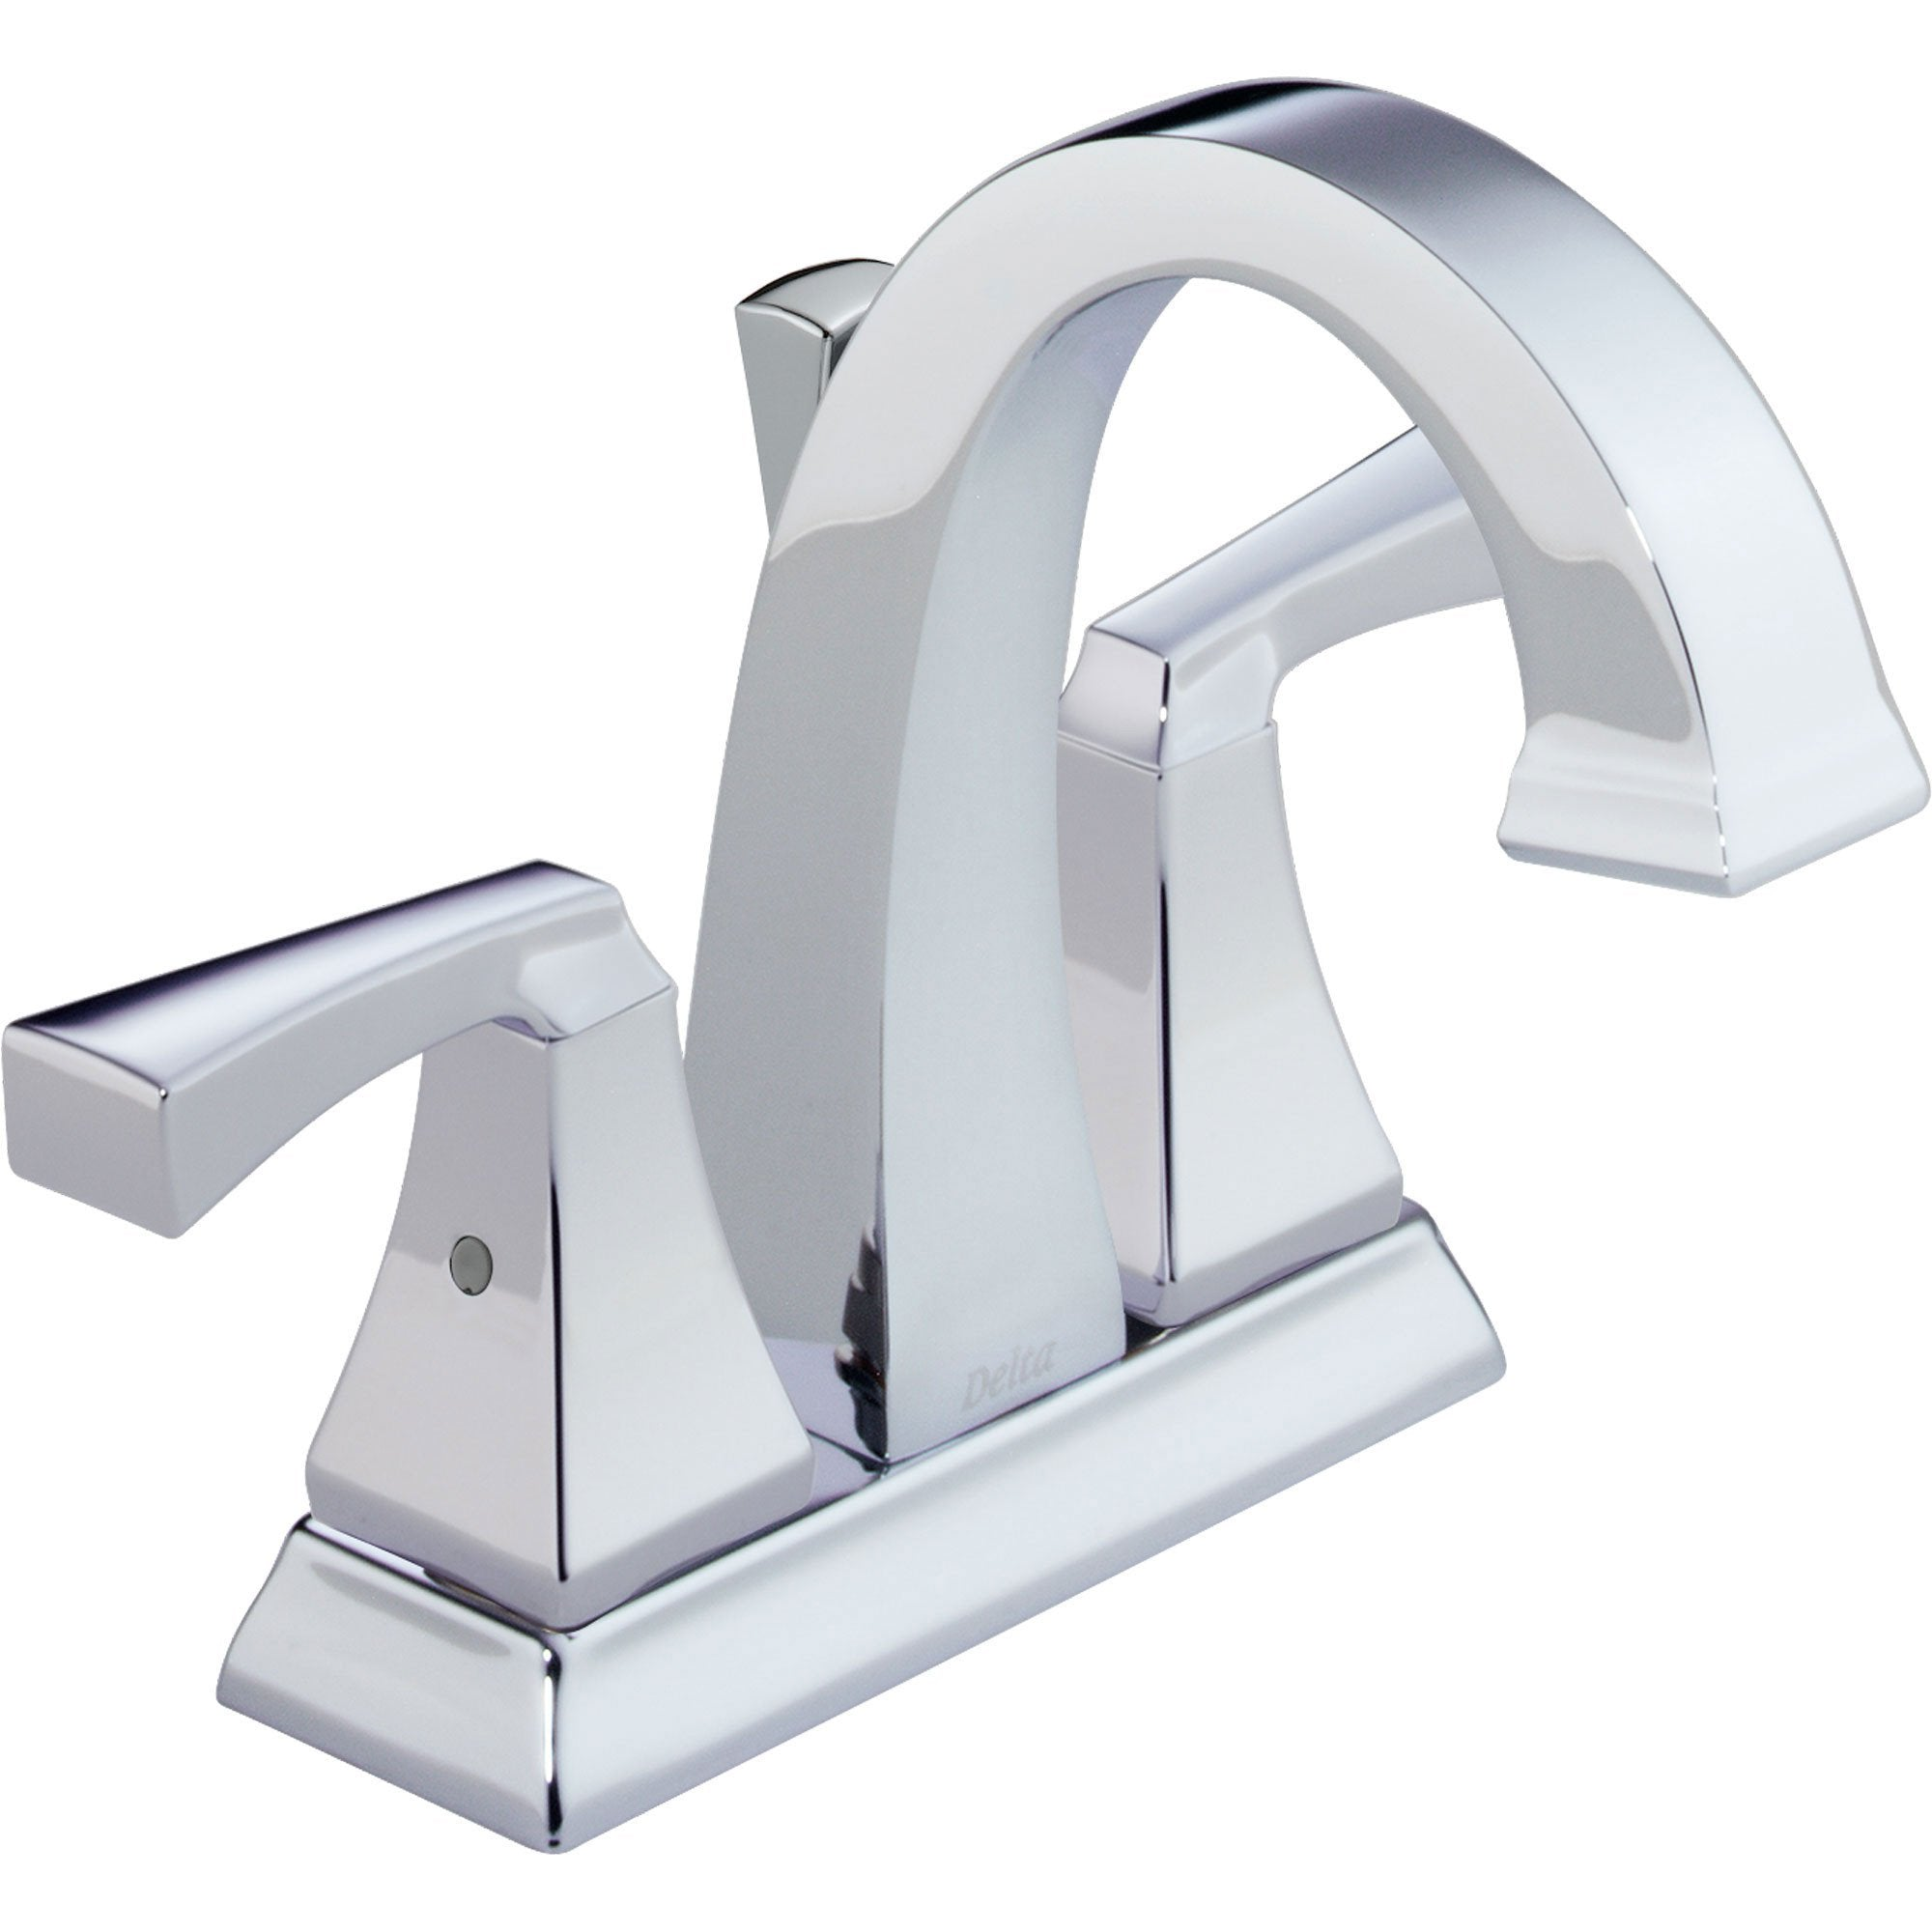 "Delta Dryden Modern 4"" Chrome Finish Centerset Bathroom Faucet 614850"